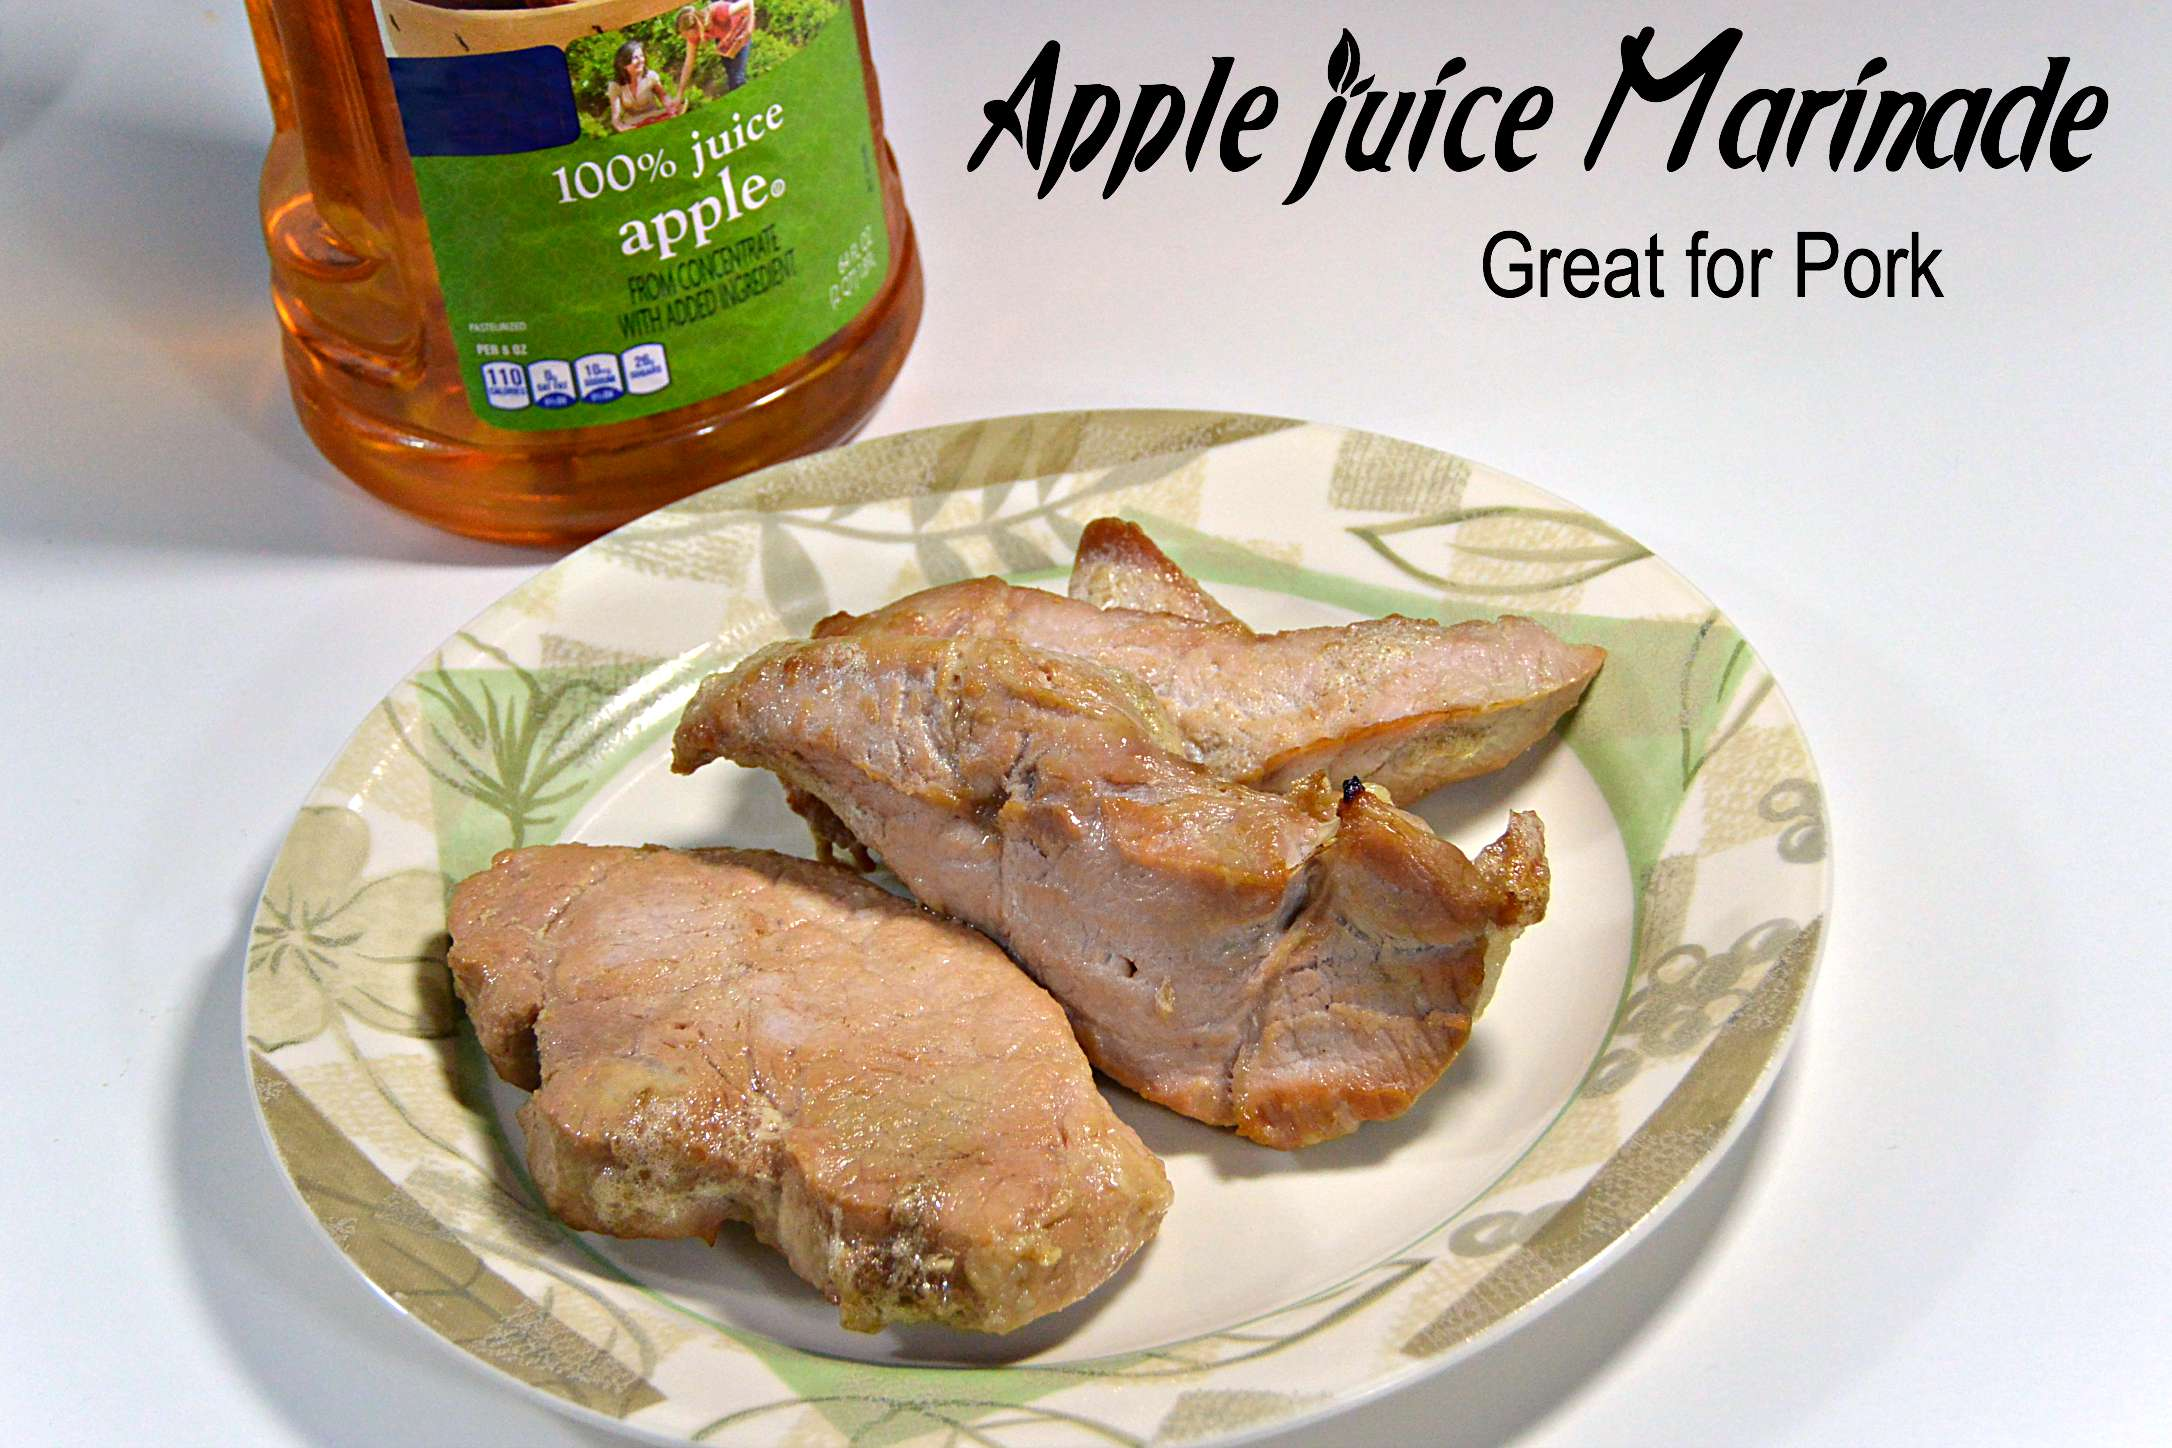 Apple Juice Marinade